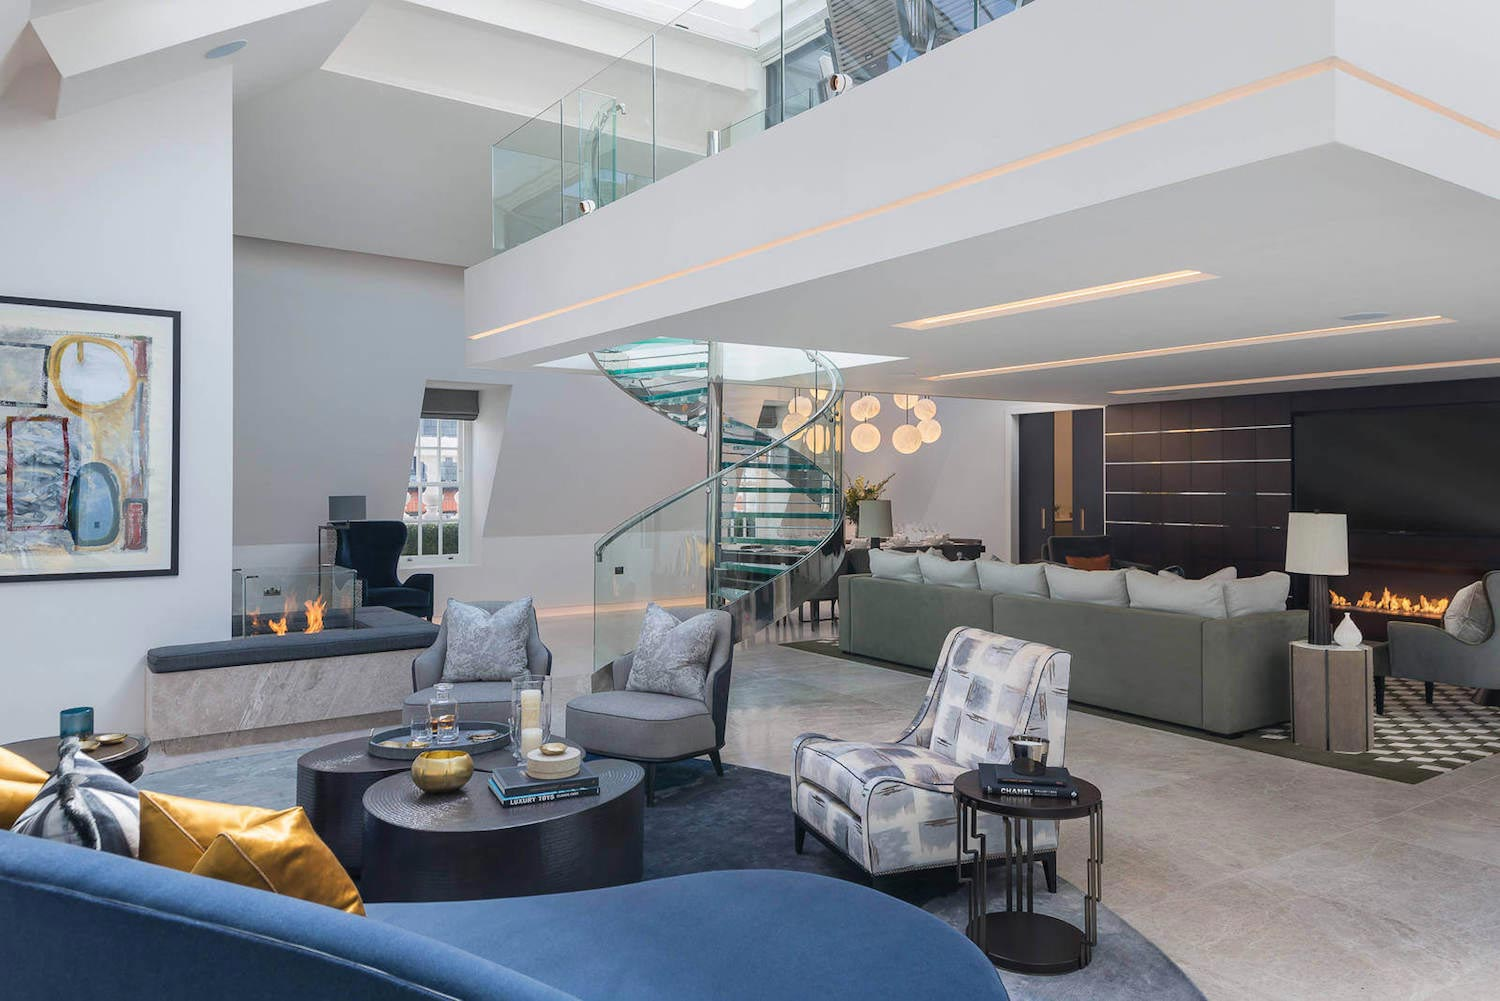 Mayfair duplex penthouse offers an elegant and stylish way of life in the west end of